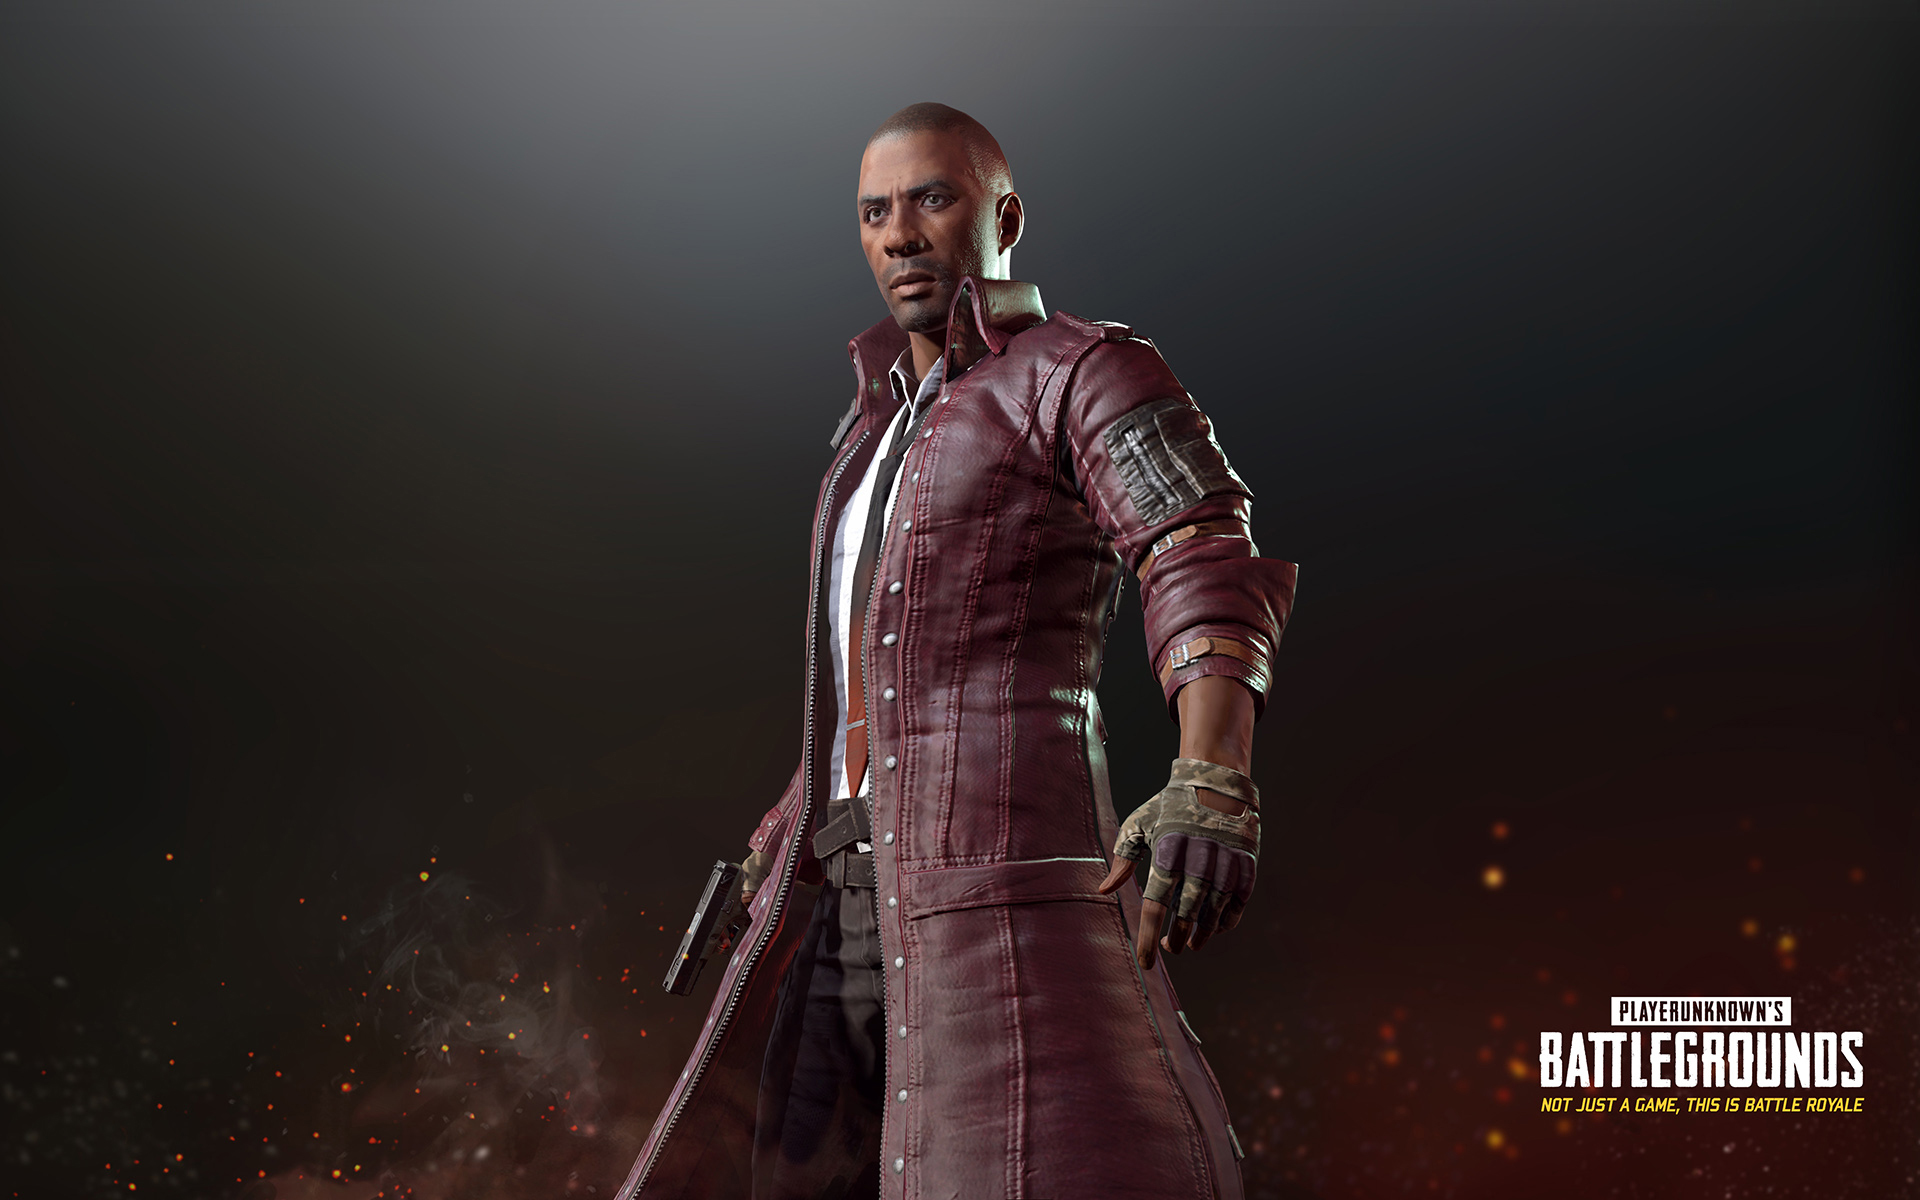 Jackets are being added to the new crates - no need to pay $300 for a spiffy coat.